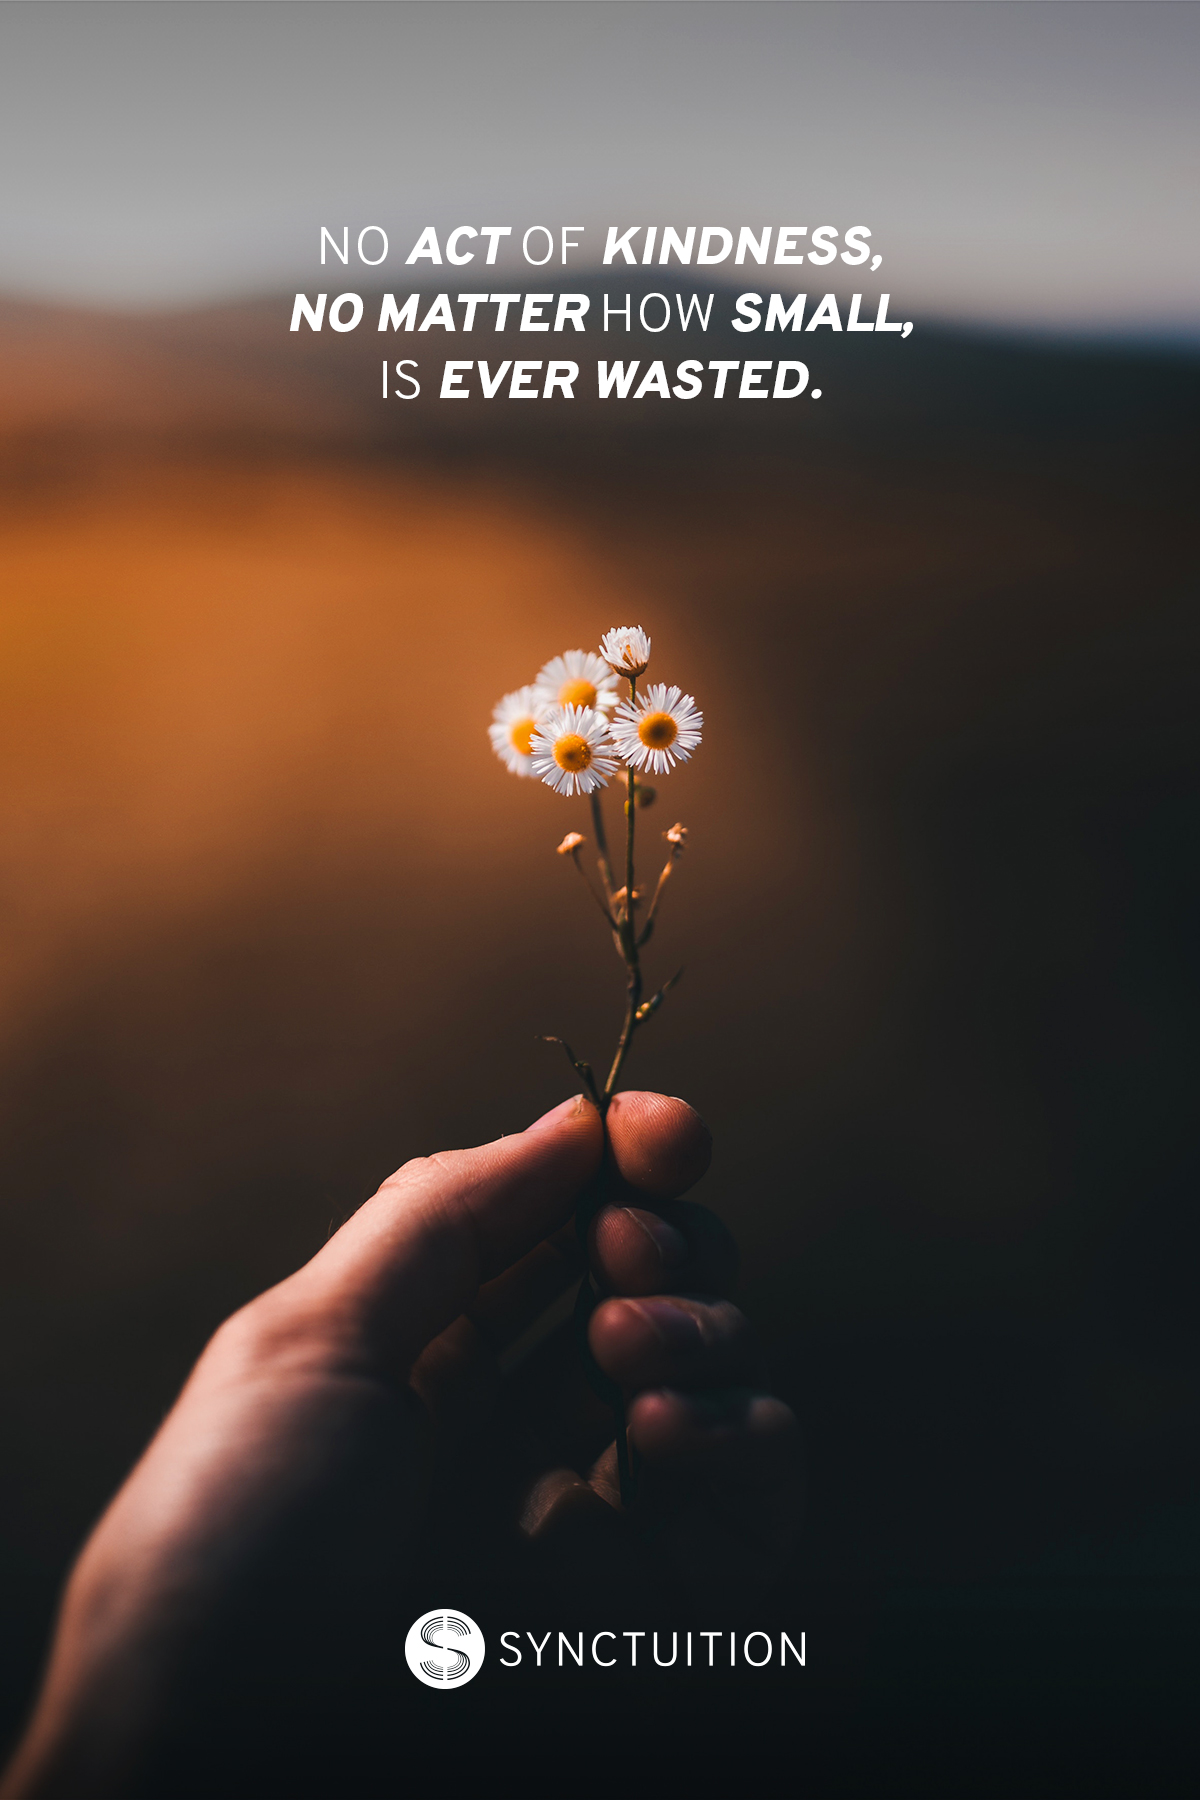 A hand holding a daisy with the quote